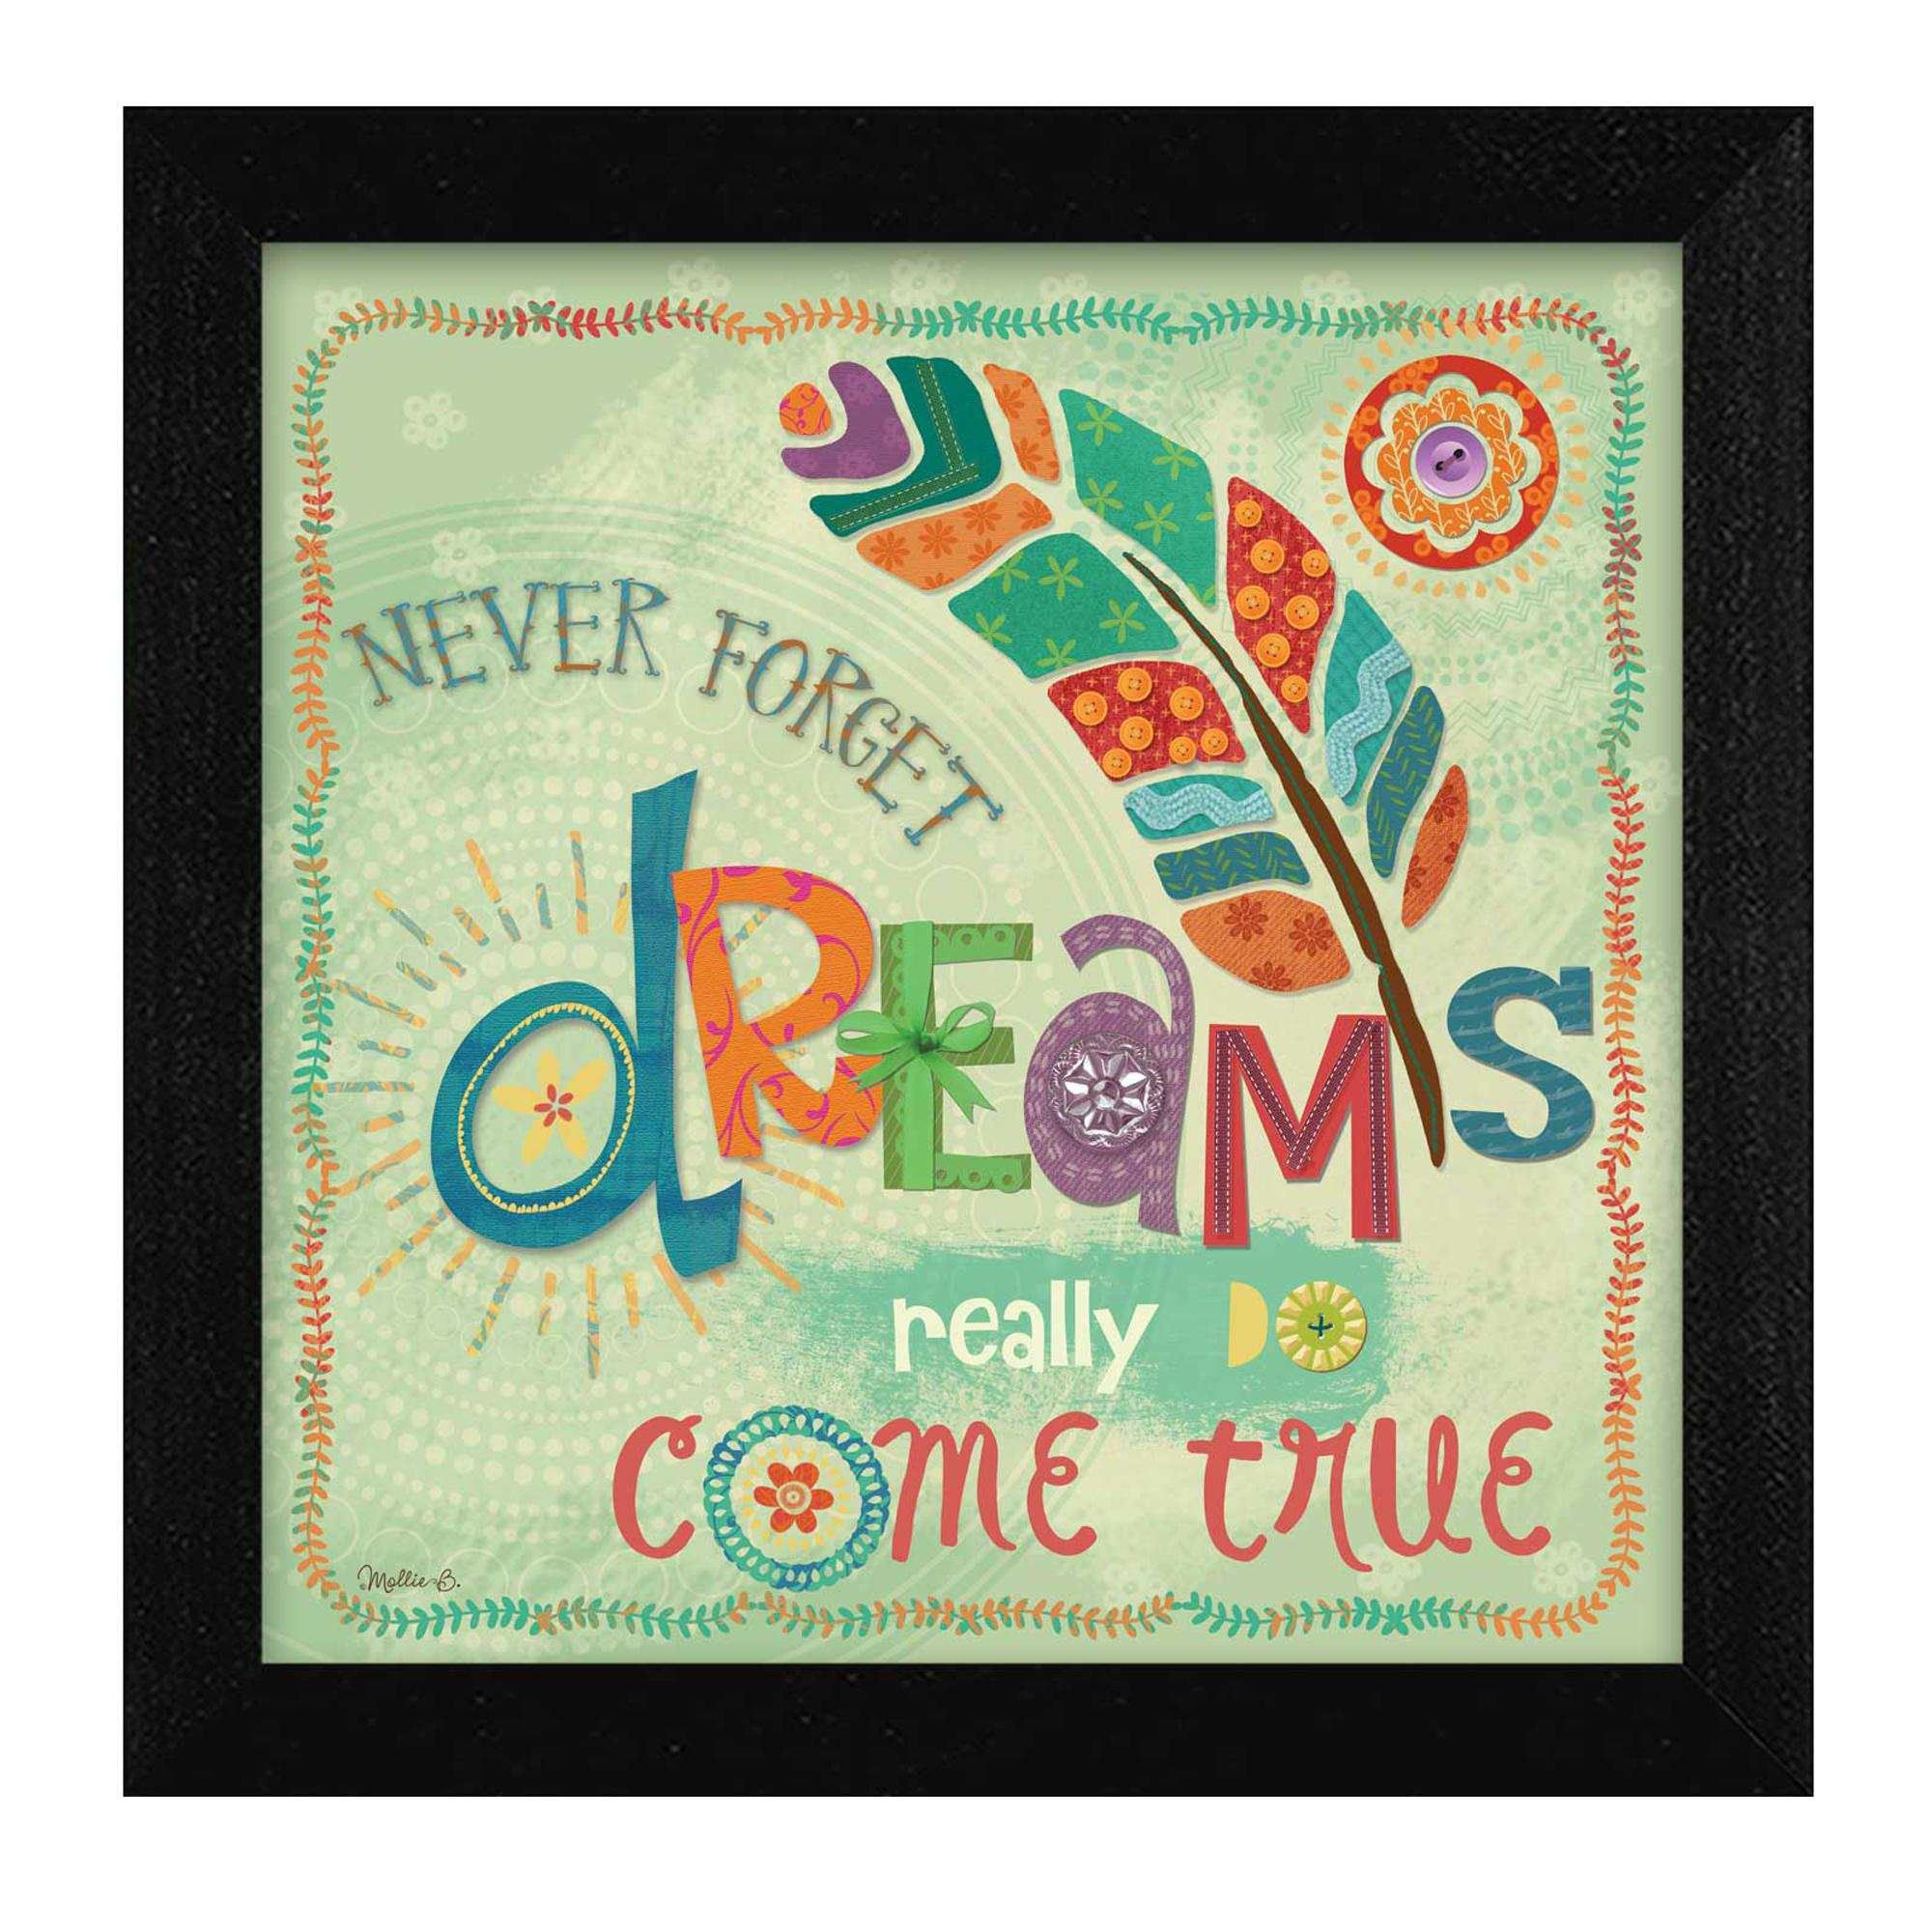 "''Dreams Come True"" by Mollie B Printed Framed Wall Art - image 2 of 2"